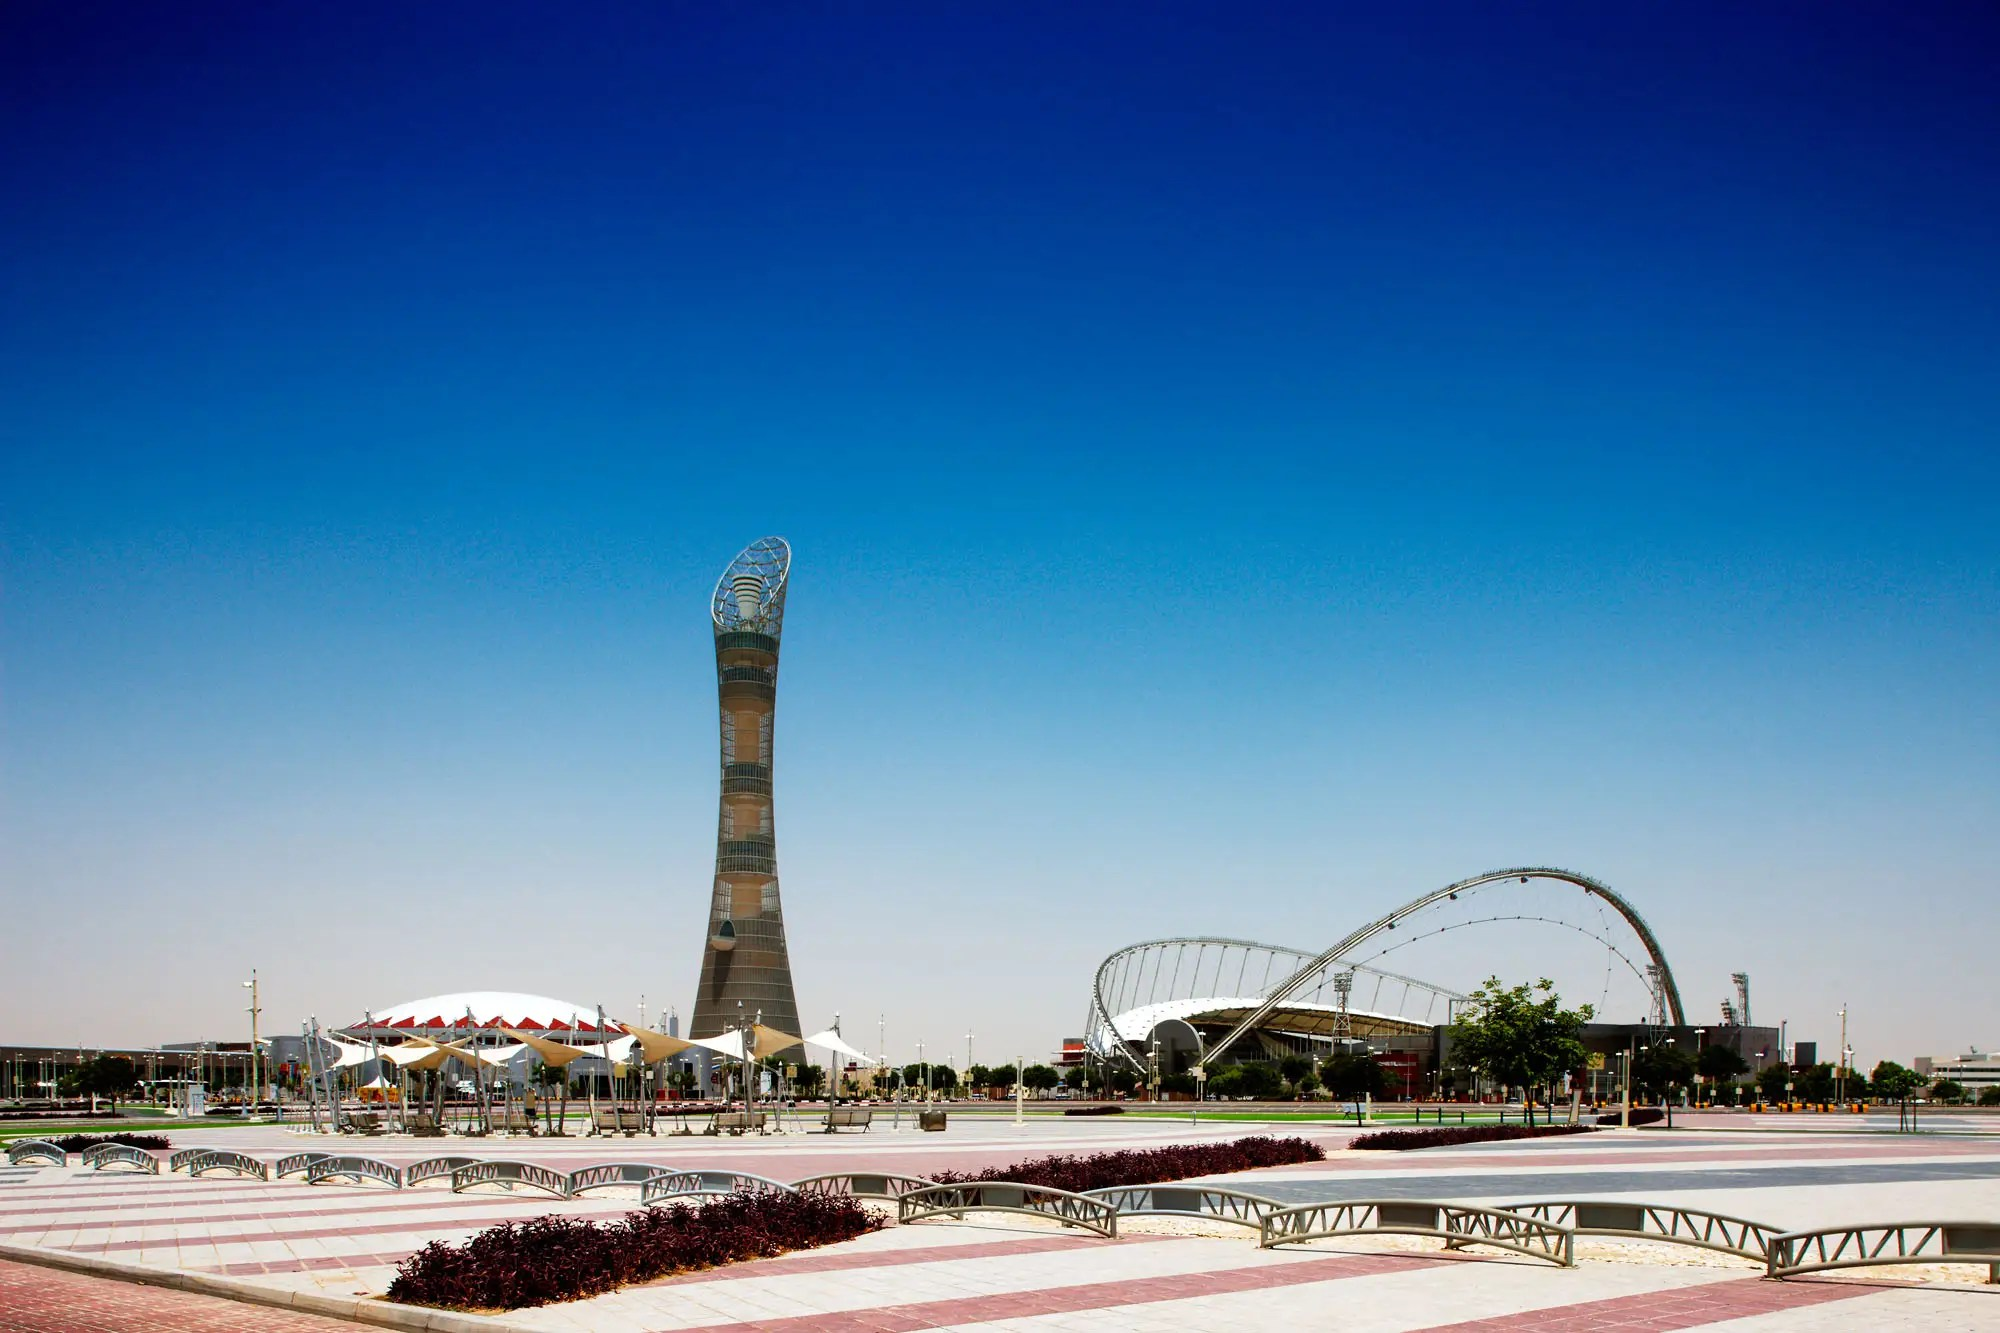 NOW: Today, the outskirts of the city have tourist attractions such as the Khalifa International Stadium and the 984-foot-tall Aspire Tower in the Doha Sport City complex.